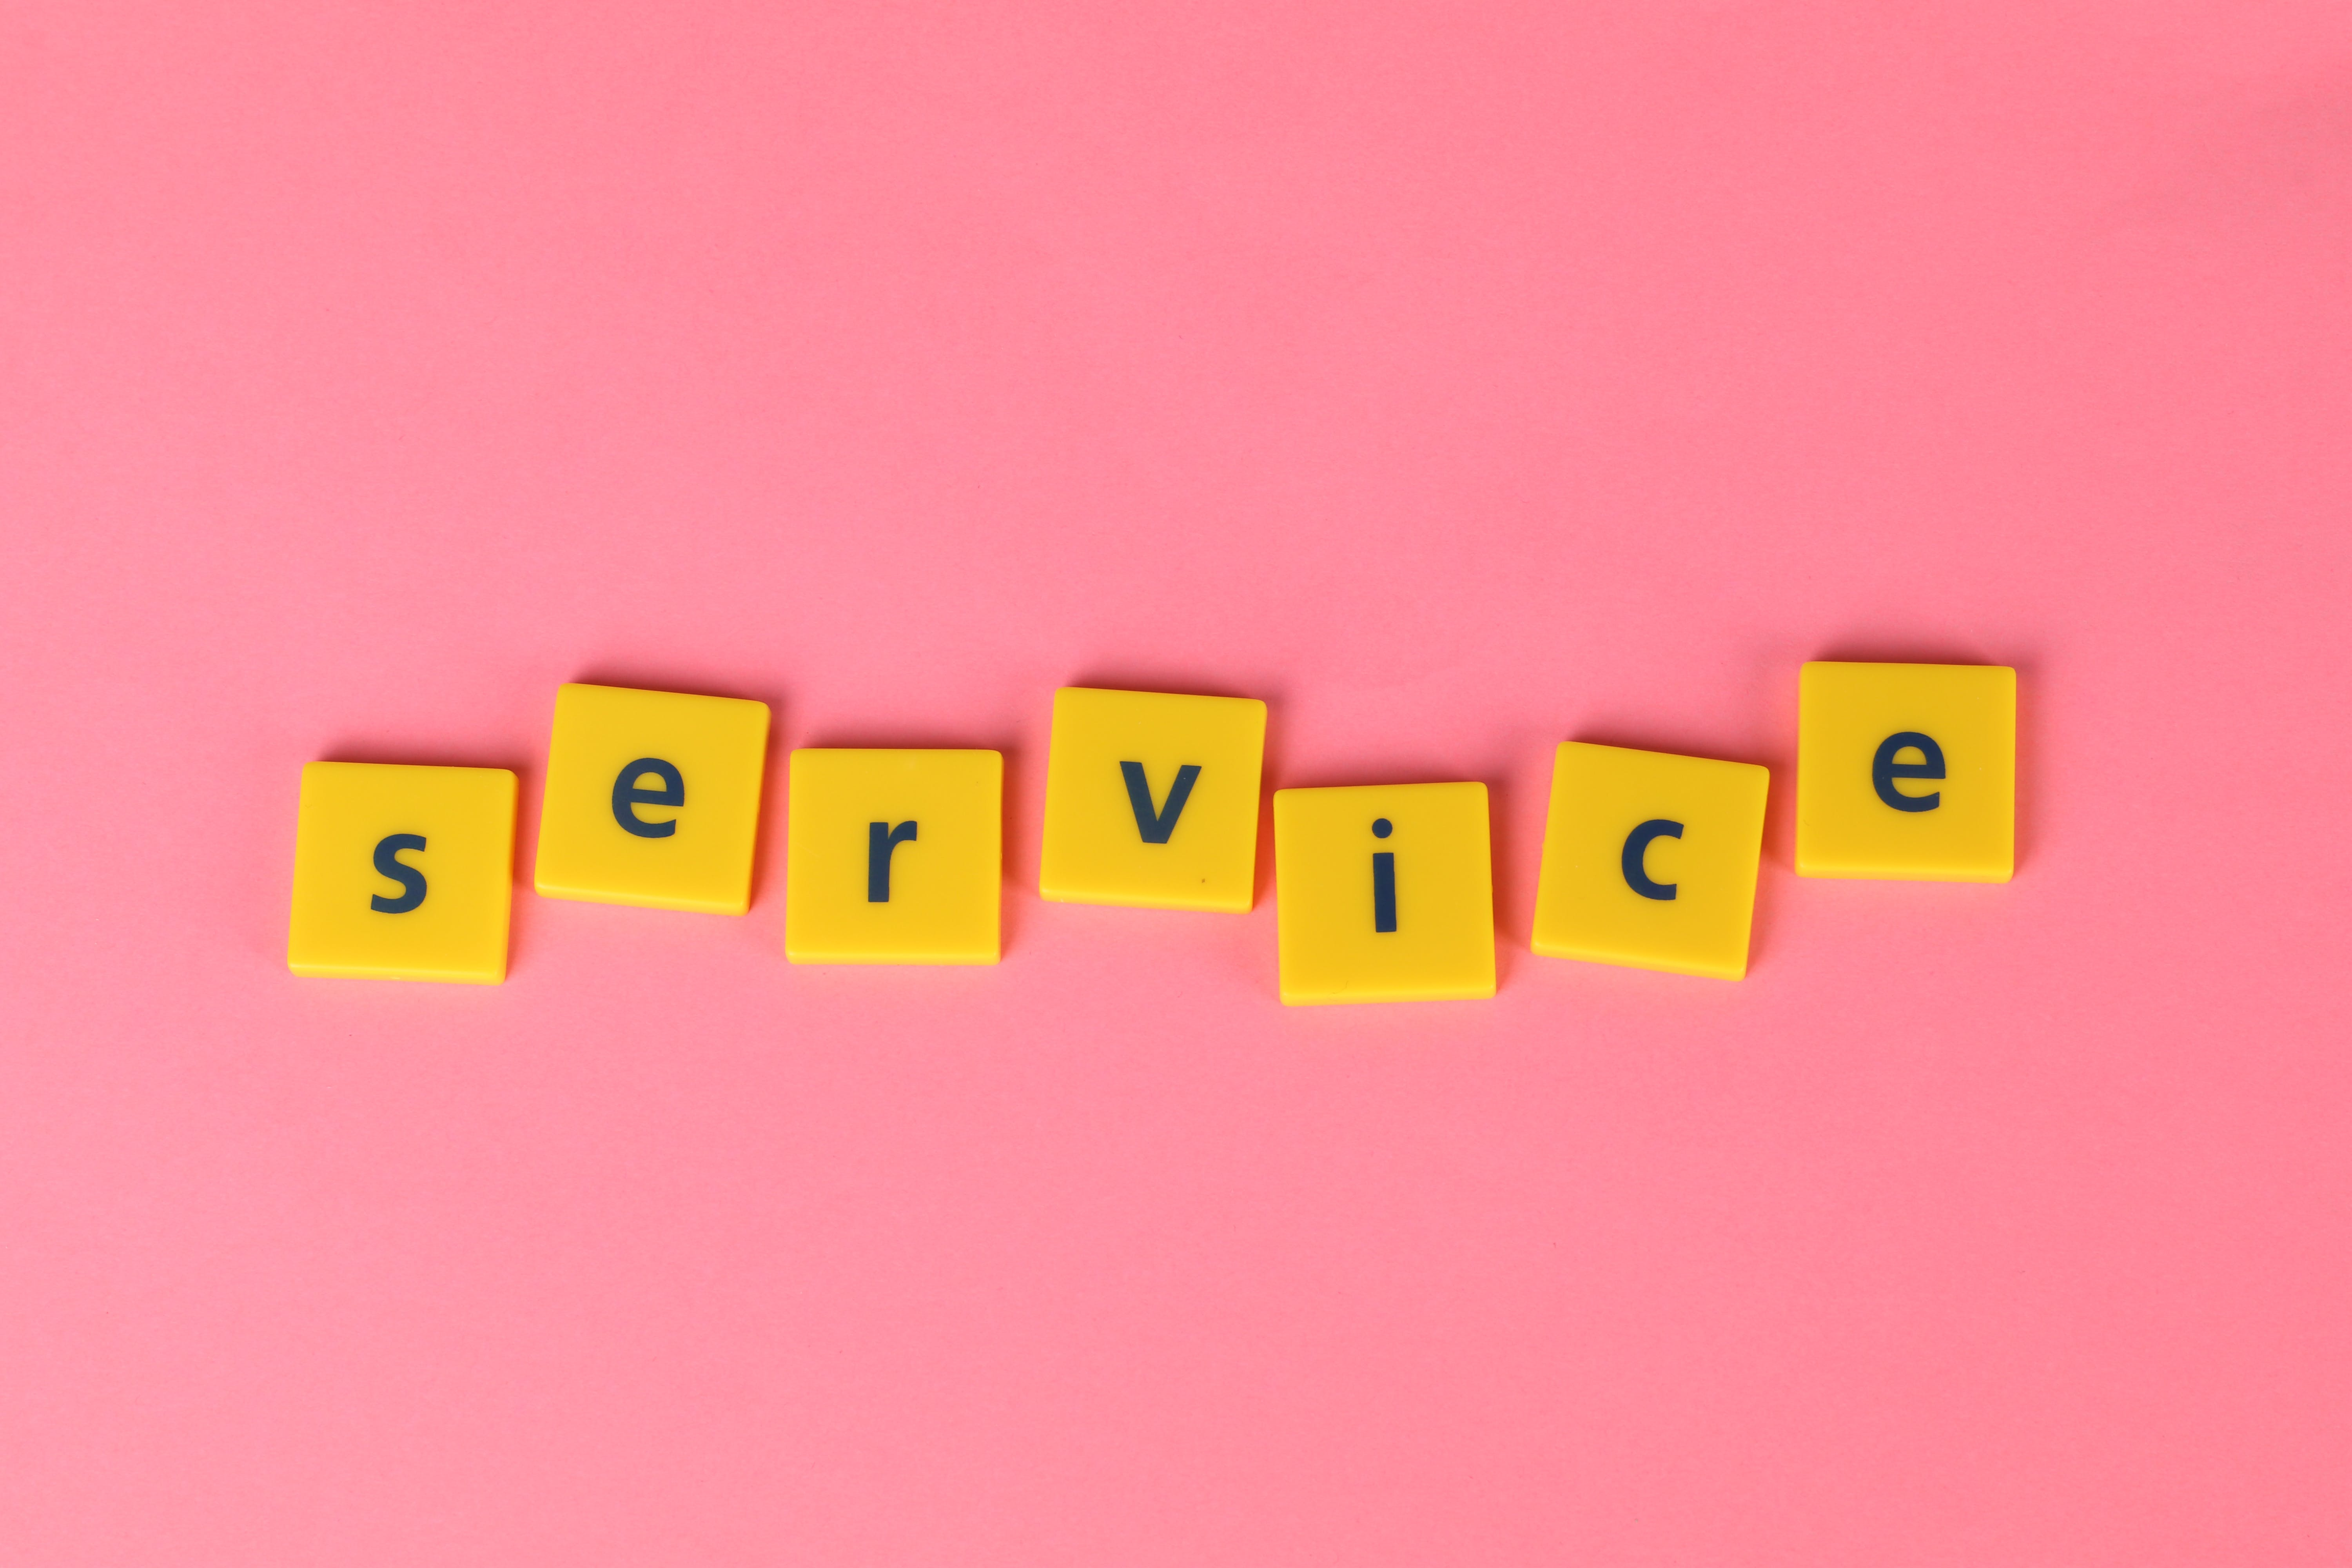 Free stock photo of pink background, service